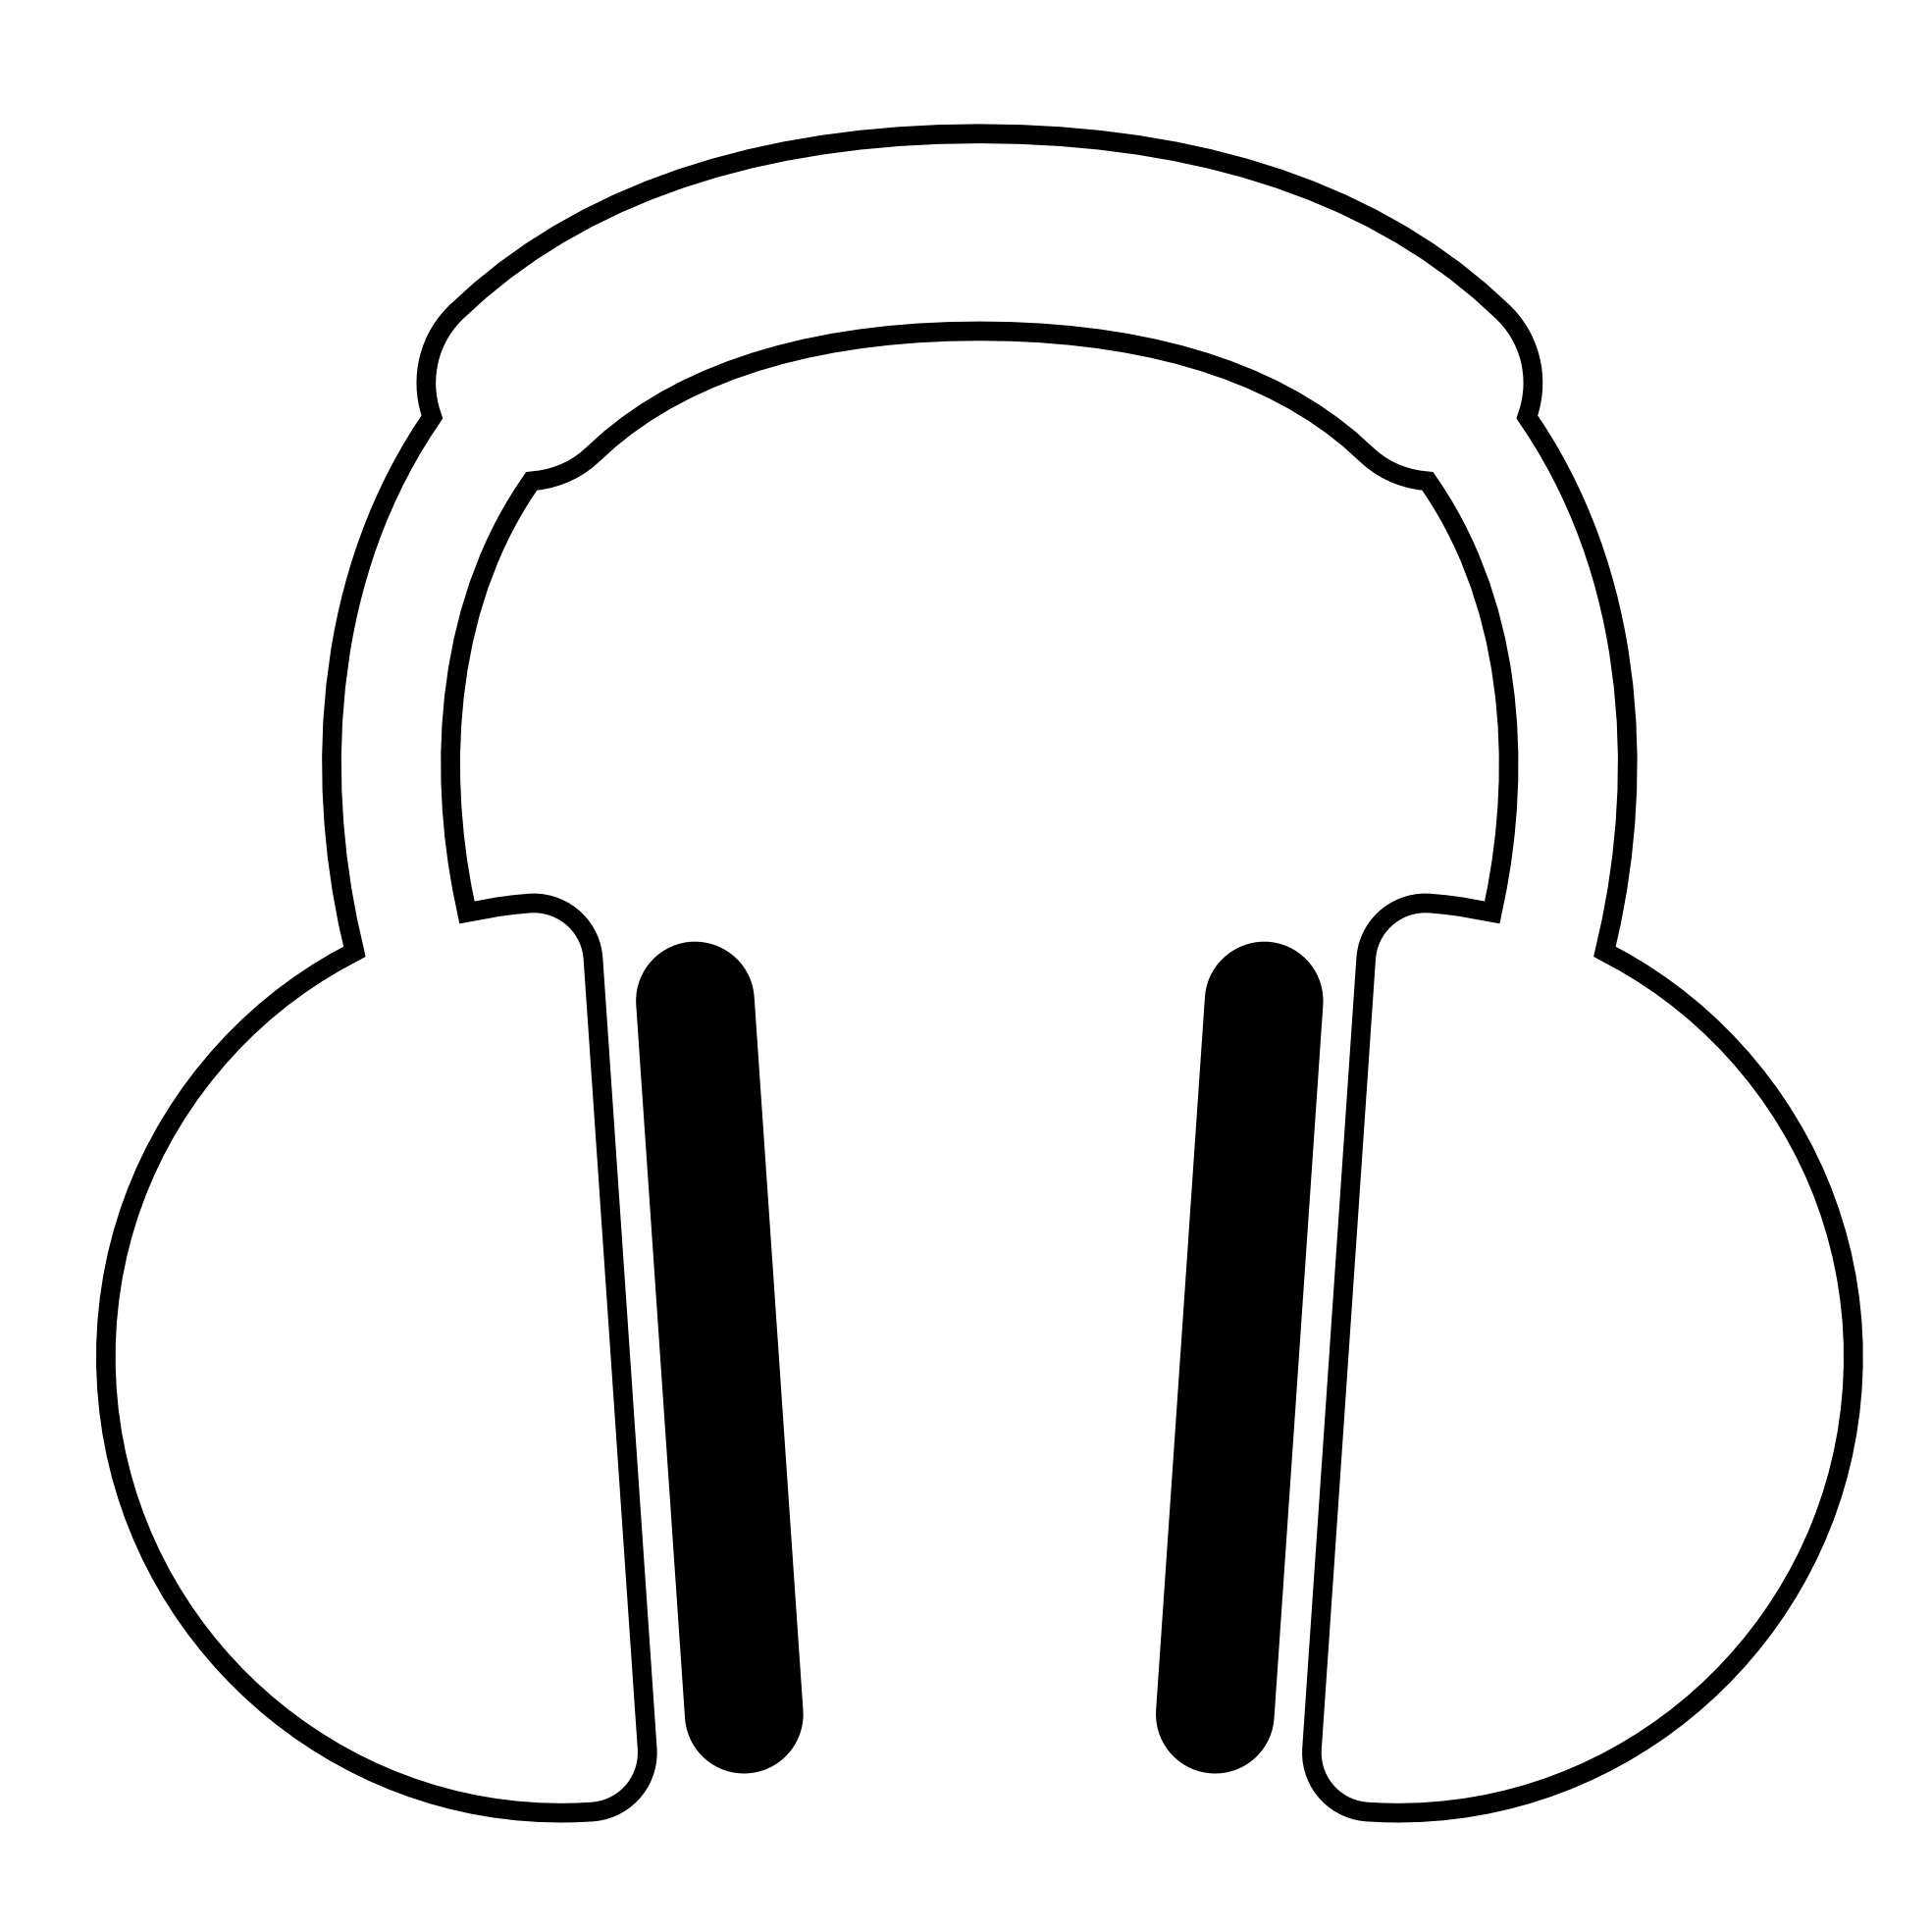 Line Art Headphones : Headphones drawing clipart best